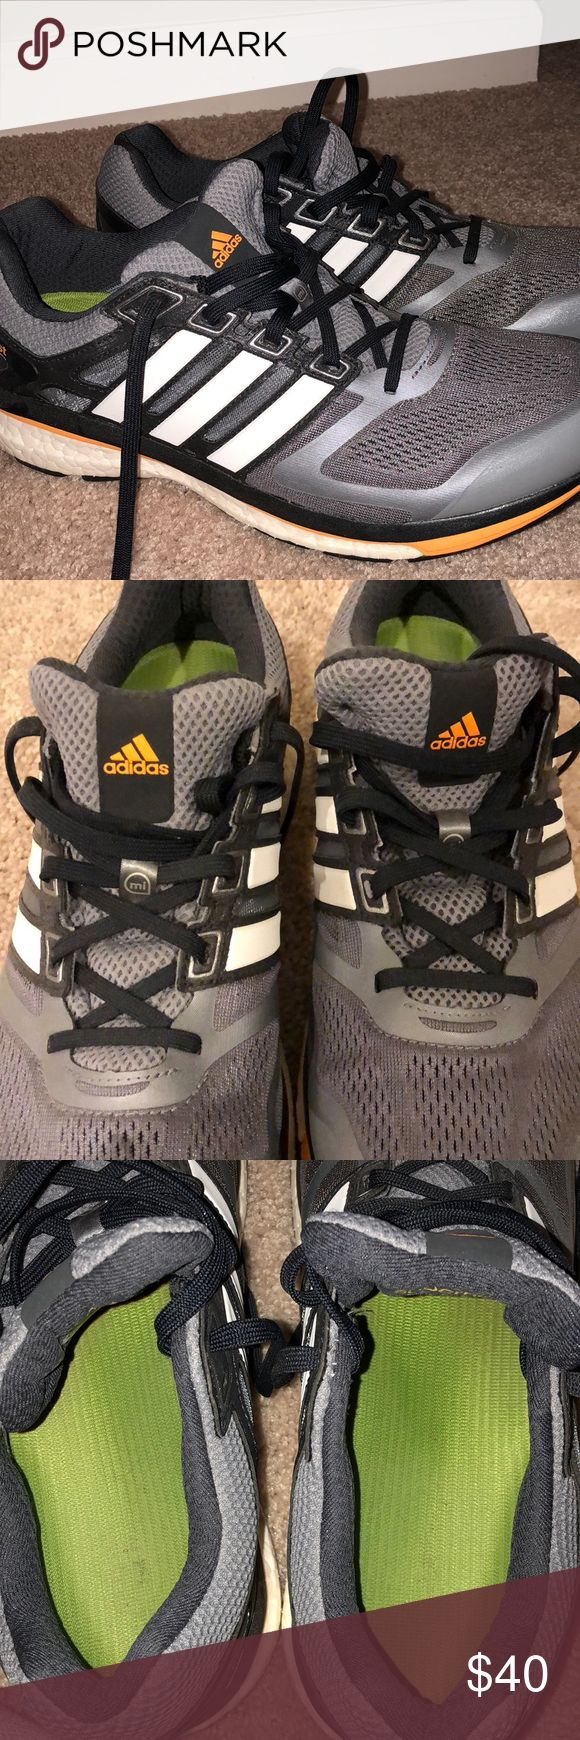 Adidas men's supernova glide boost Like new, men's Adidas soft sole golf shoes/tennis shoes. Very clean and only worn once or twice. Size 10.5 adidas Shoes Athletic Shoes